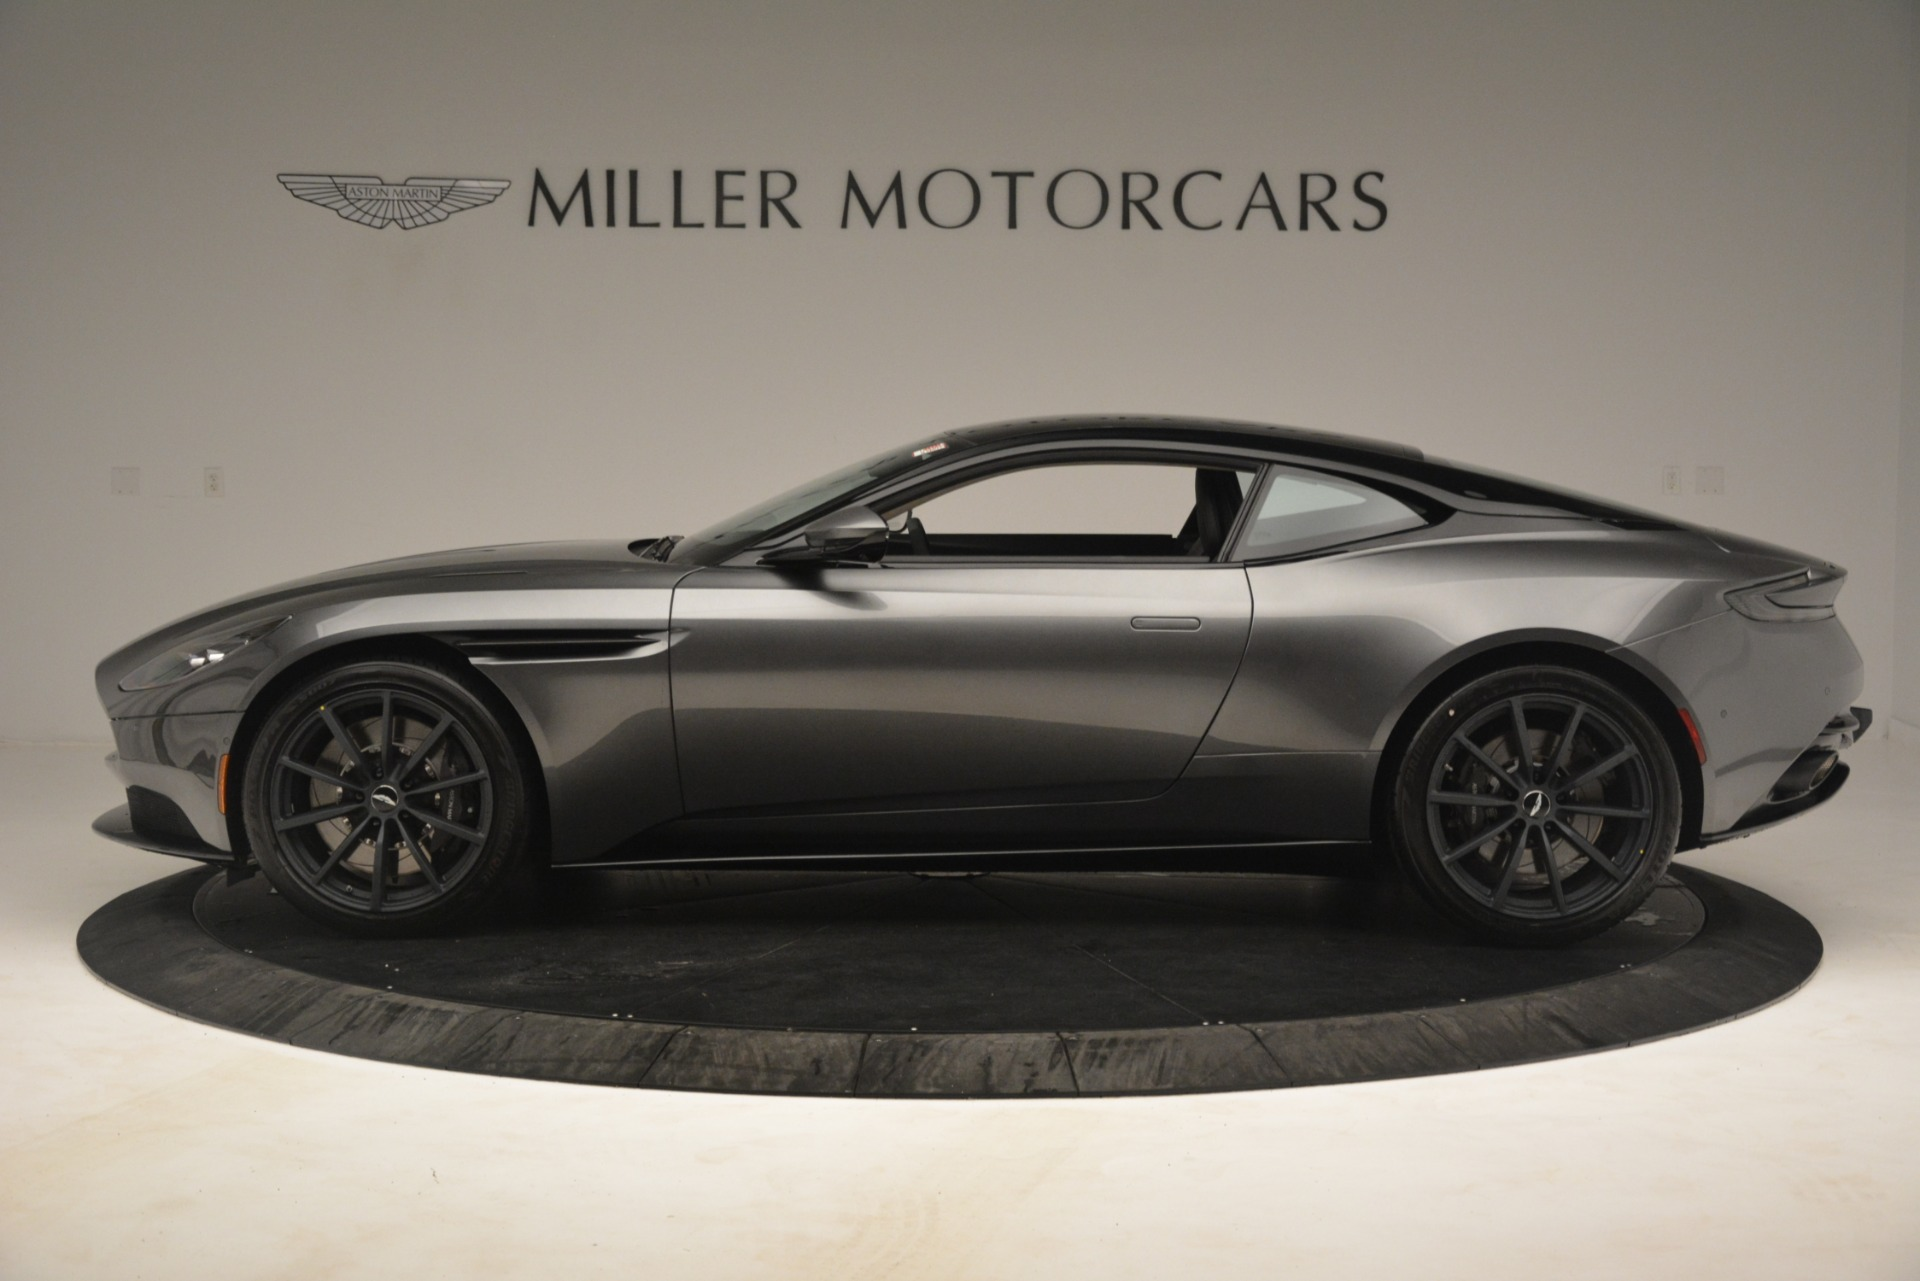 New 2019 Aston Martin DB11 V12 AMR Coupe For Sale In Greenwich, CT. Alfa Romeo of Greenwich, A1366 3123_p3